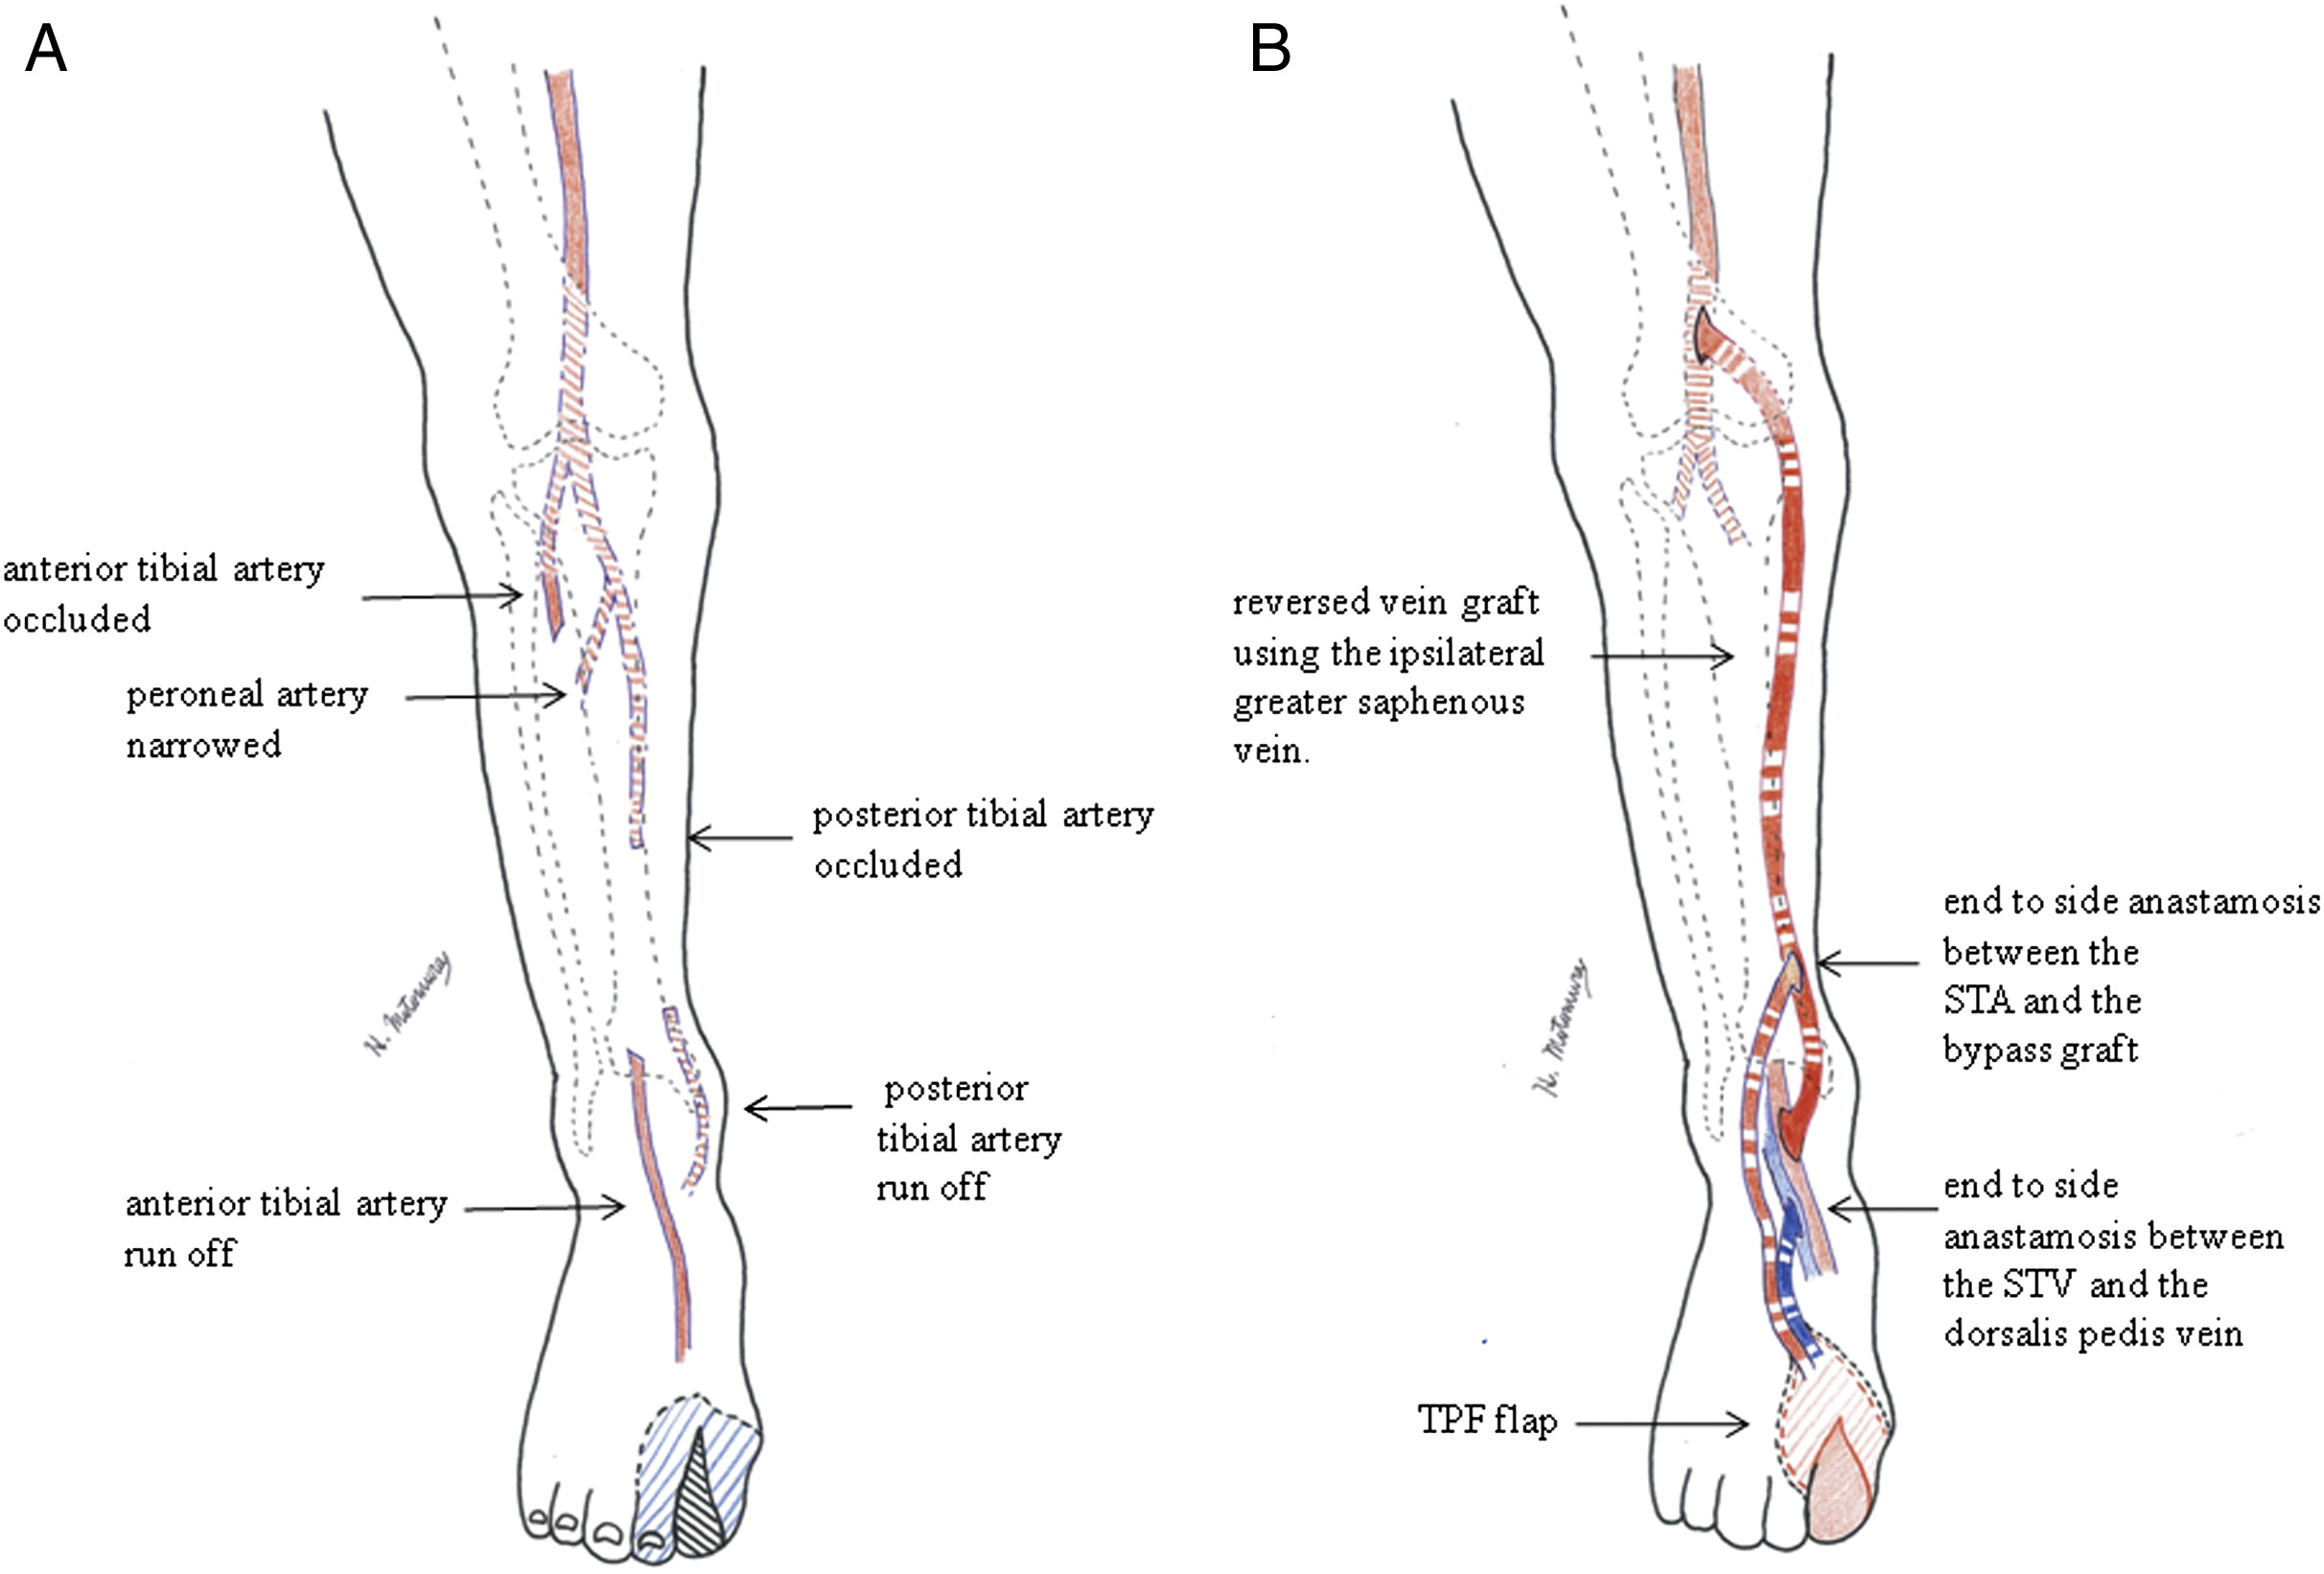 A Hybrid Therapy For Buerger S Disease Using Distal Bypass